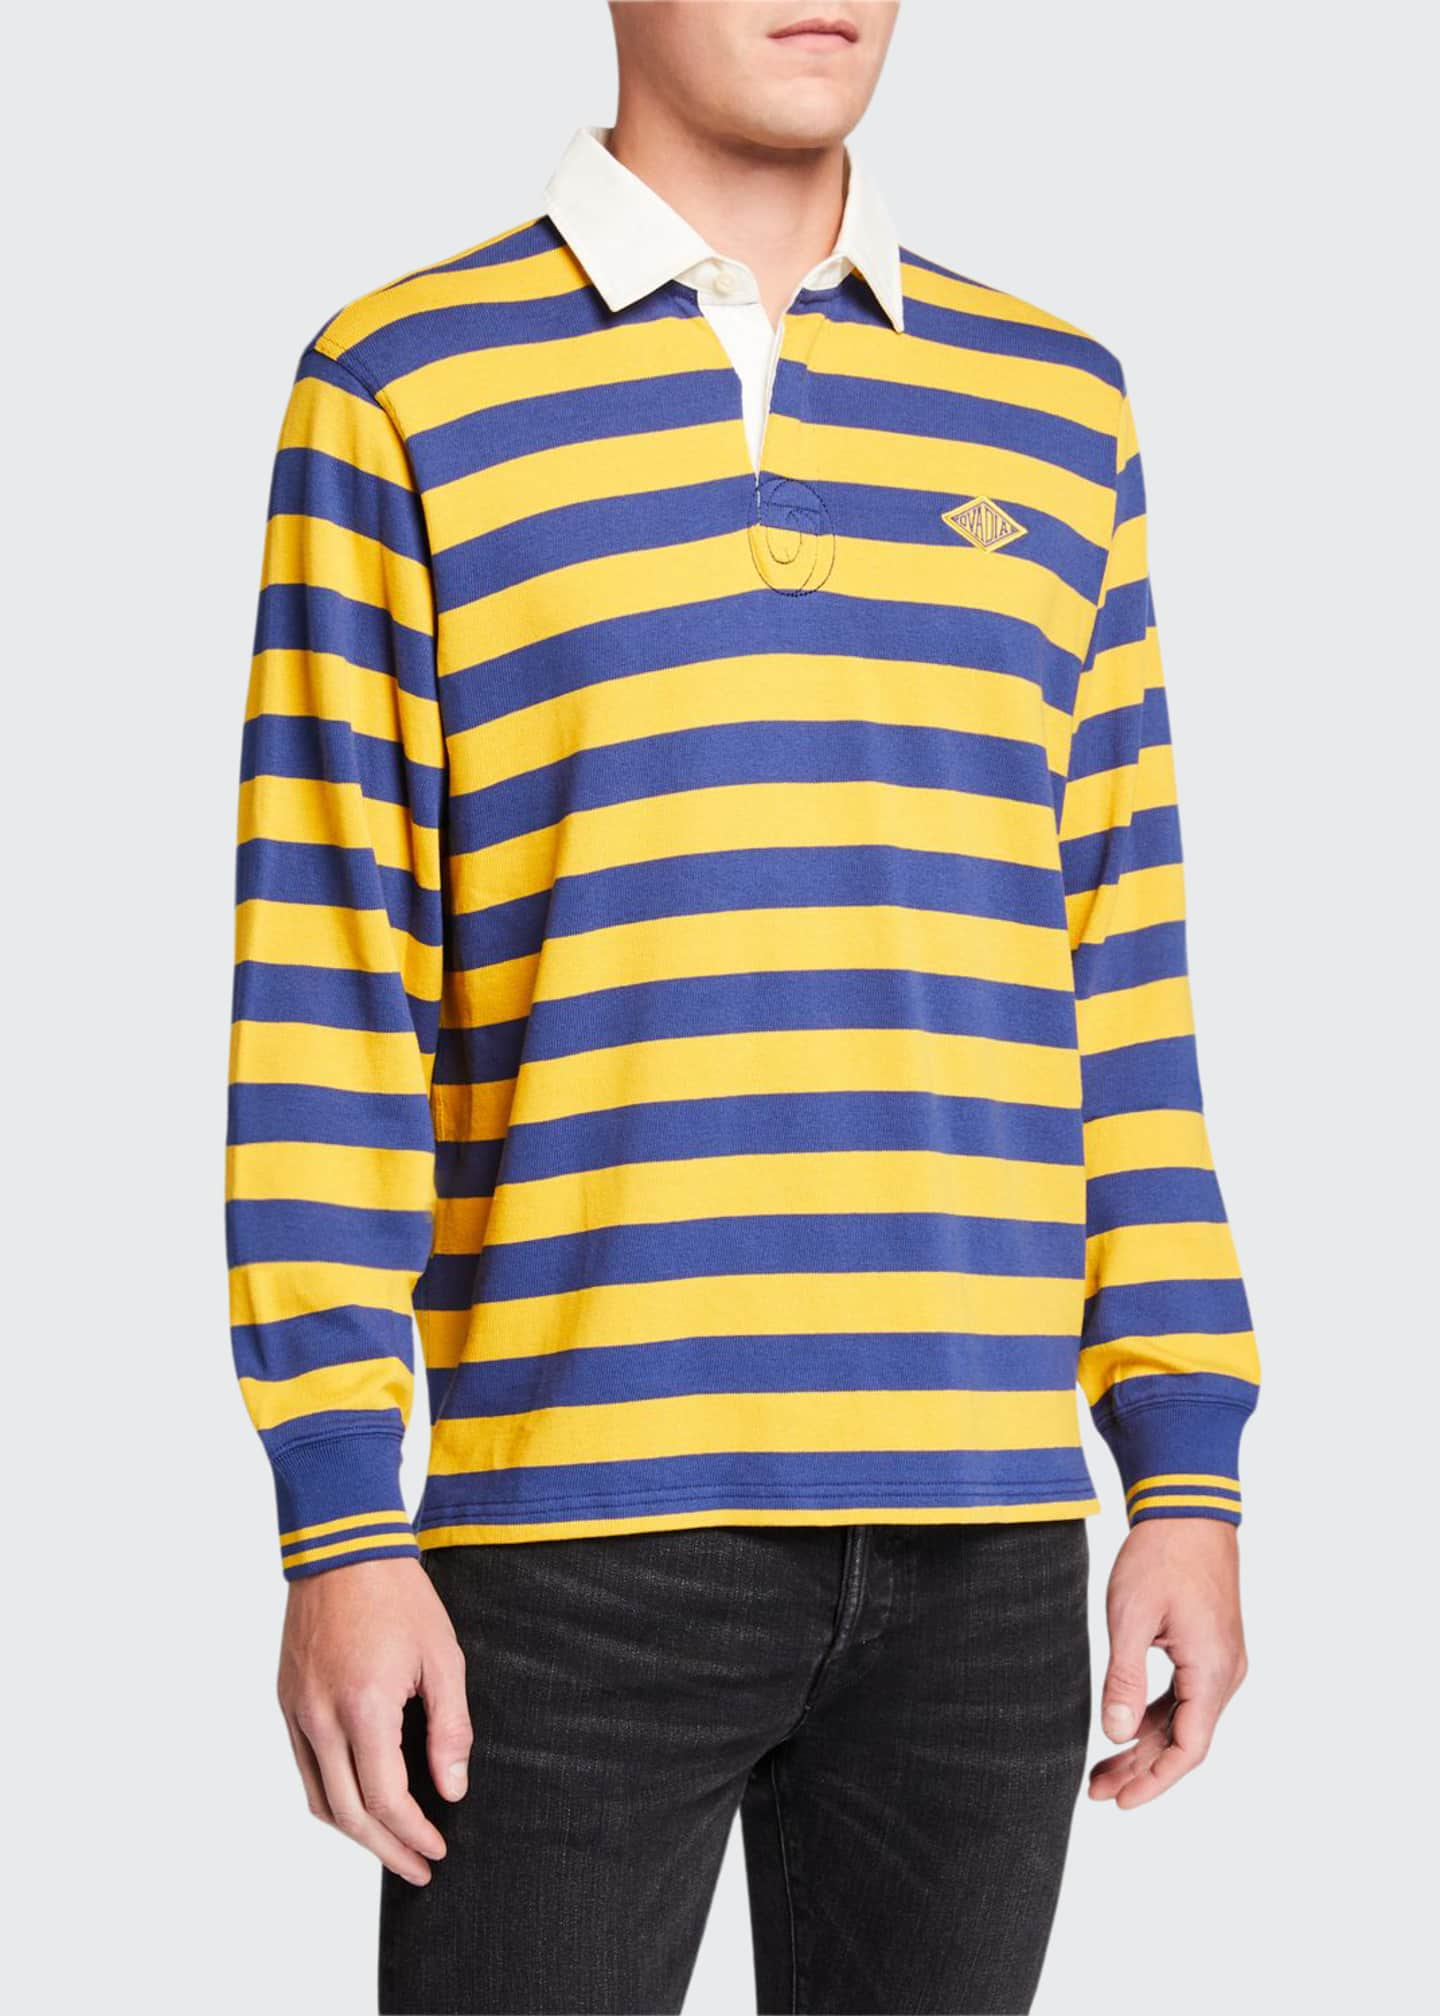 Ovadia & Sons Men's Monogram Rugby Striped Long-Sleeve